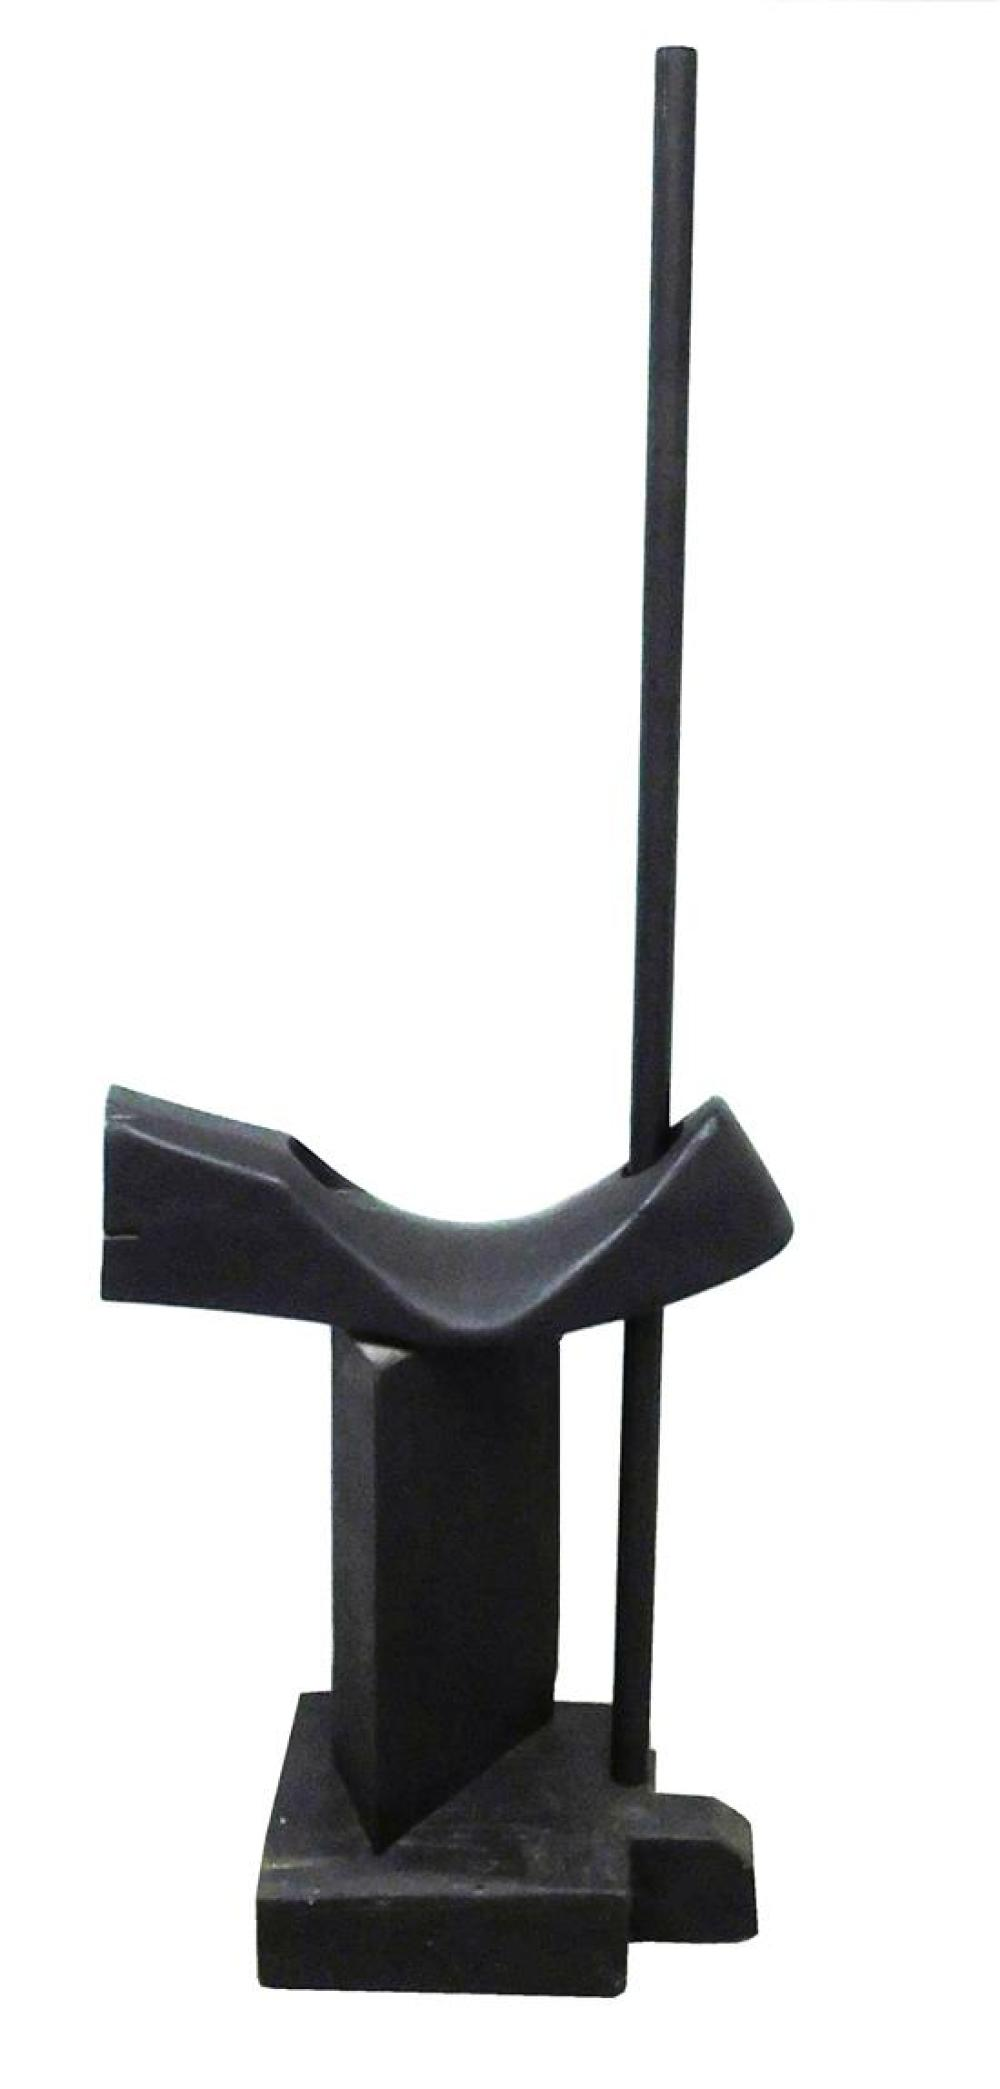 """Louise Nevelson (Russian/American, 1899 - 1988), """"Animal Form"""", 1951, Cubist standing sculpture of monochromatic wood, painted black..."""